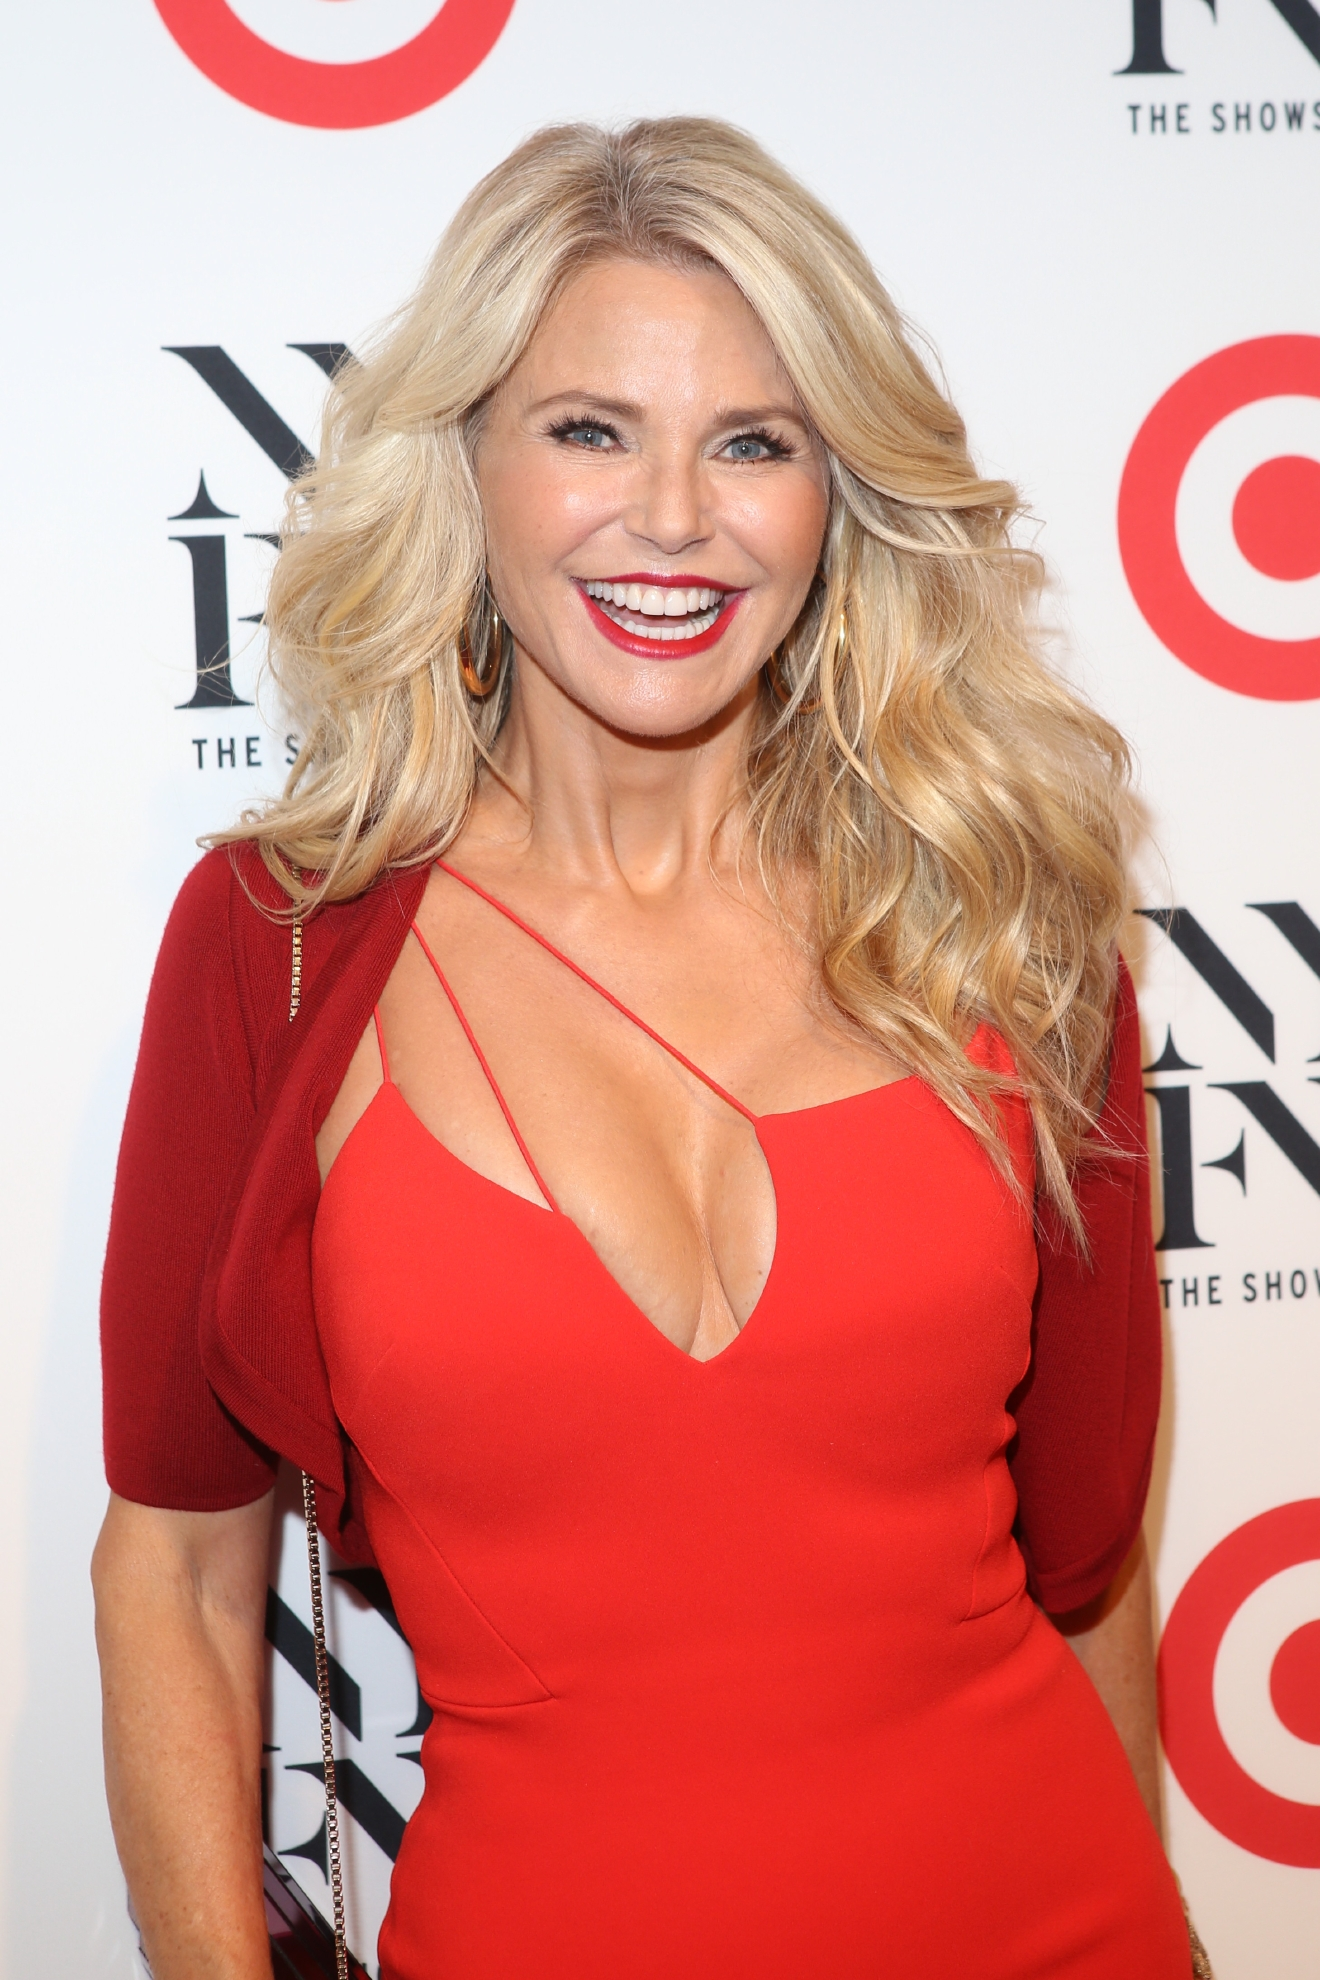 Target and IMG kick off New York Fashion Week - Arrivals                                    Featuring: Christie Brinkley                  Where: New York, New York, United States                  When: 06 Sep 2016                  Credit: Derrick Salters/WENN.com